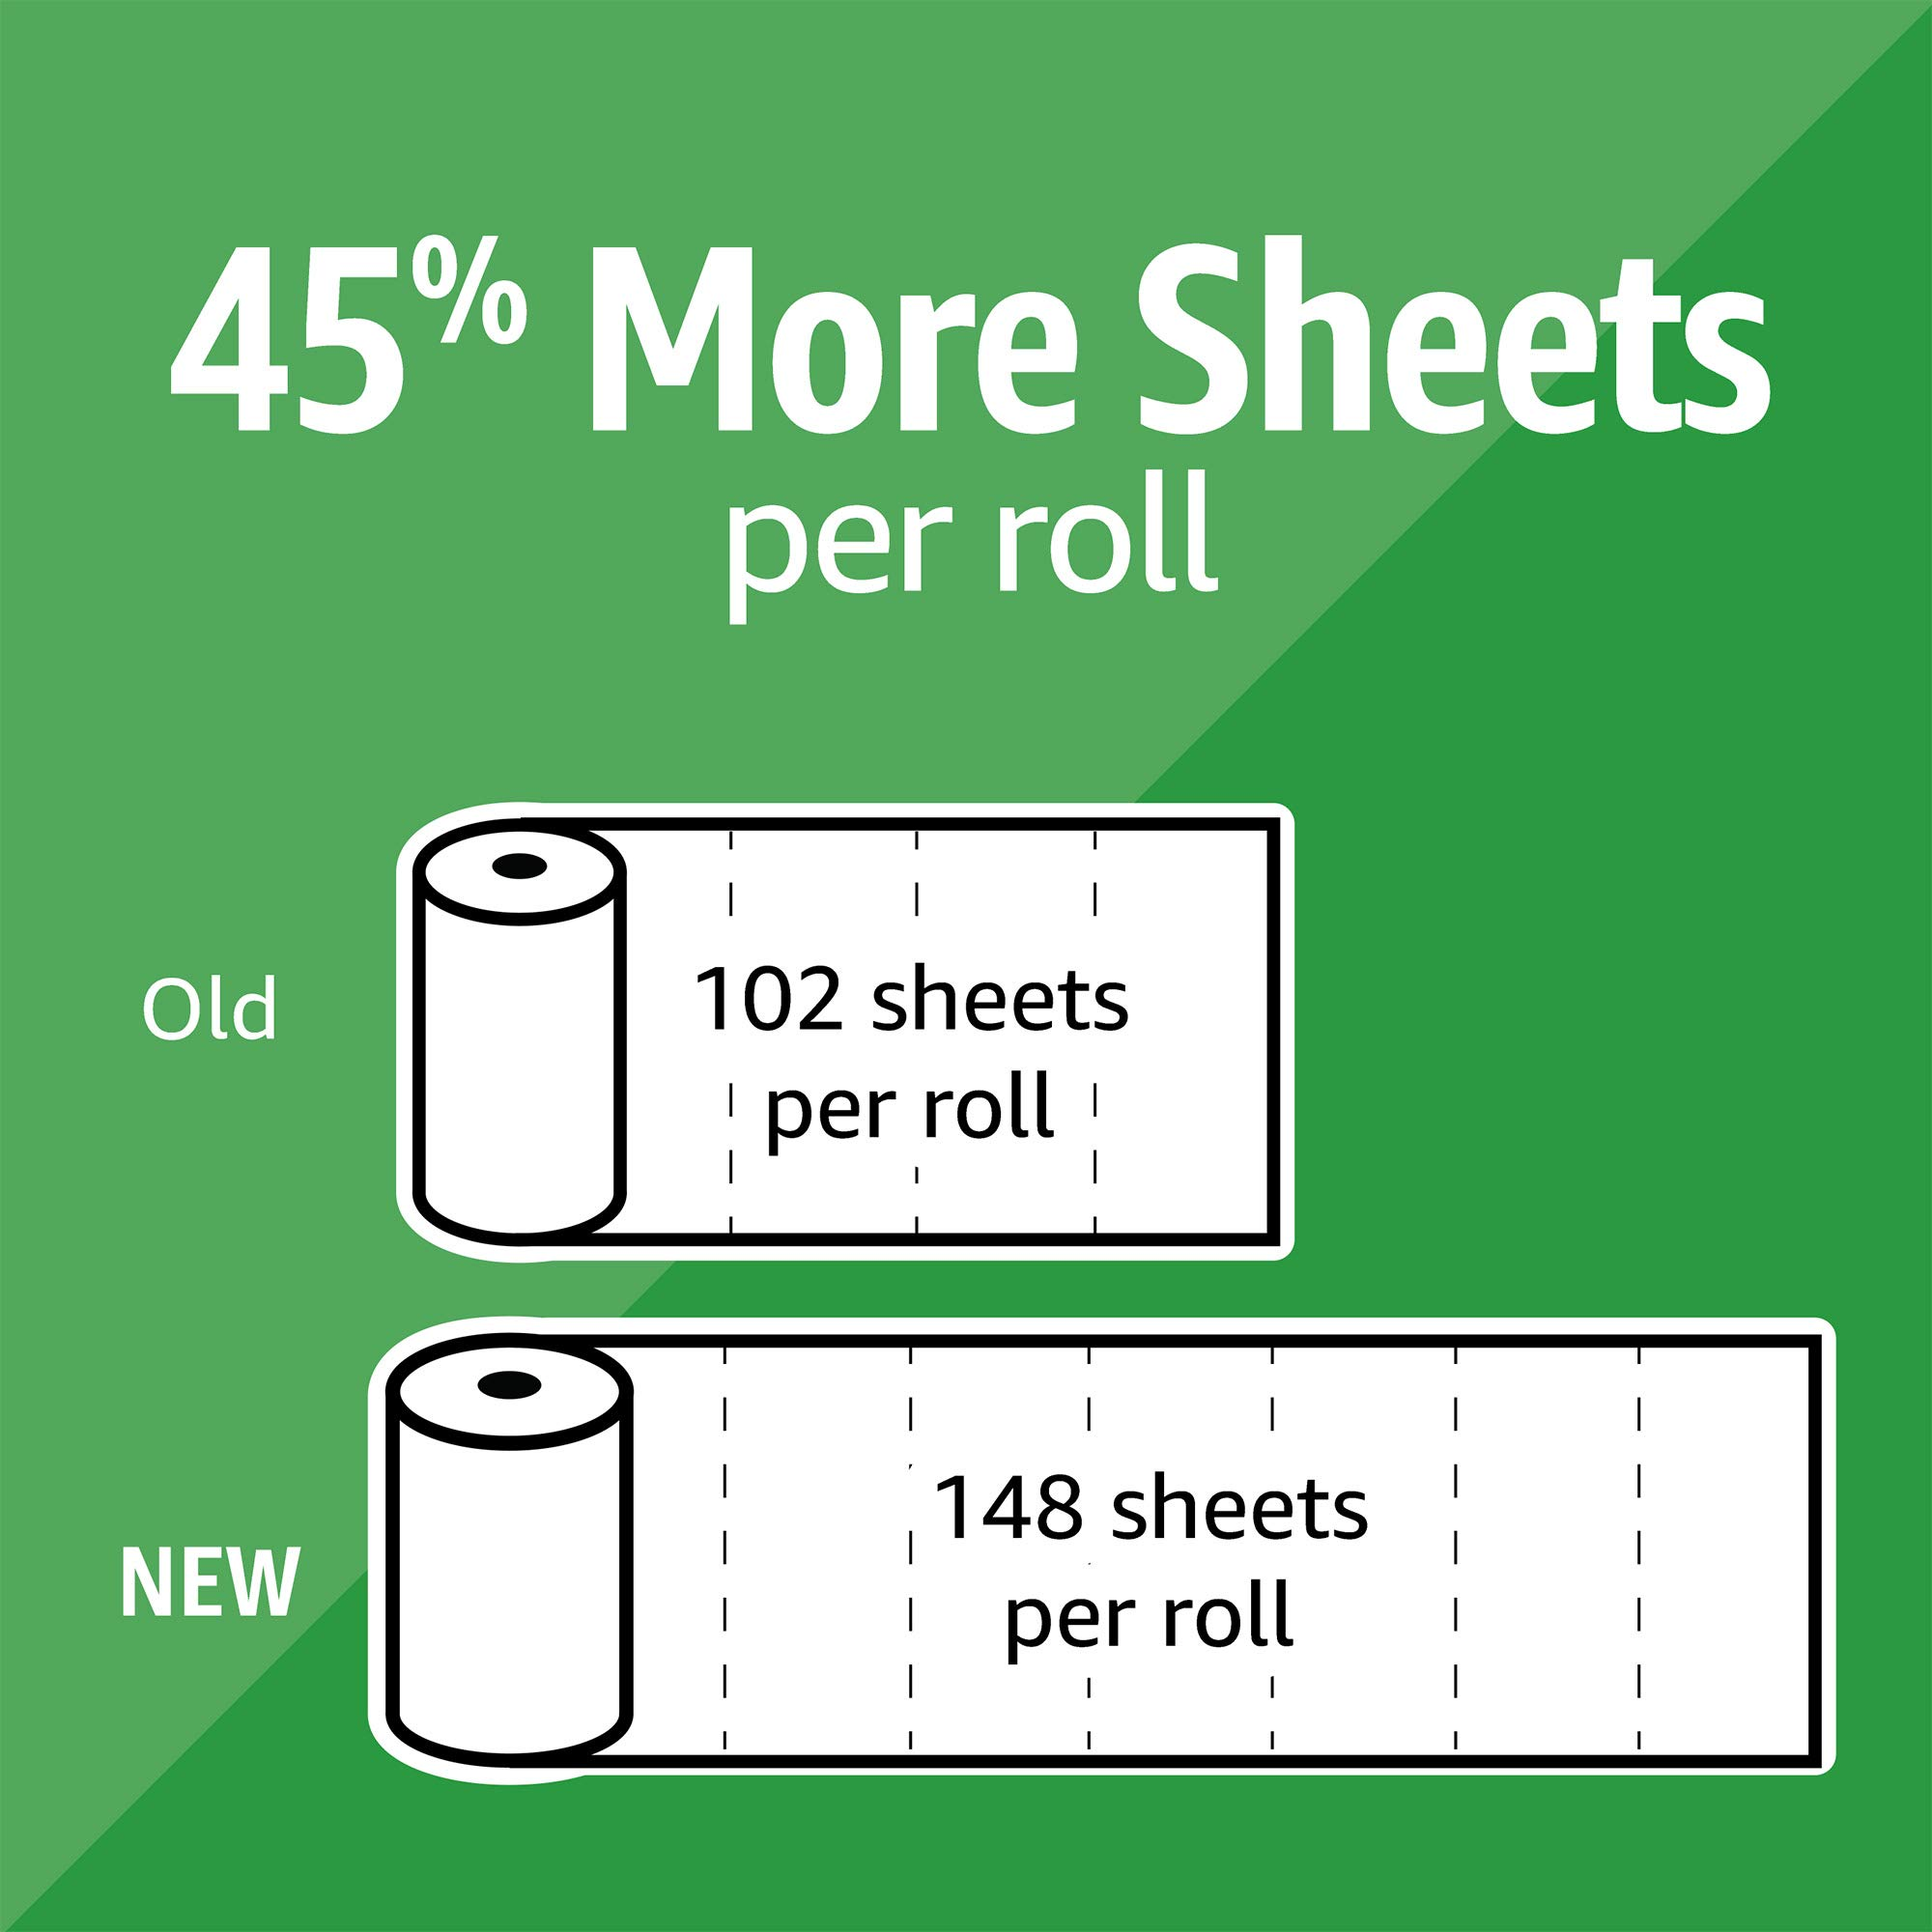 Solimo Basic Flex-Sheets Paper Towels, 12 Value Rolls, White, 148 Sheets per Roll (New Version) by SOLIMO (Image #5)